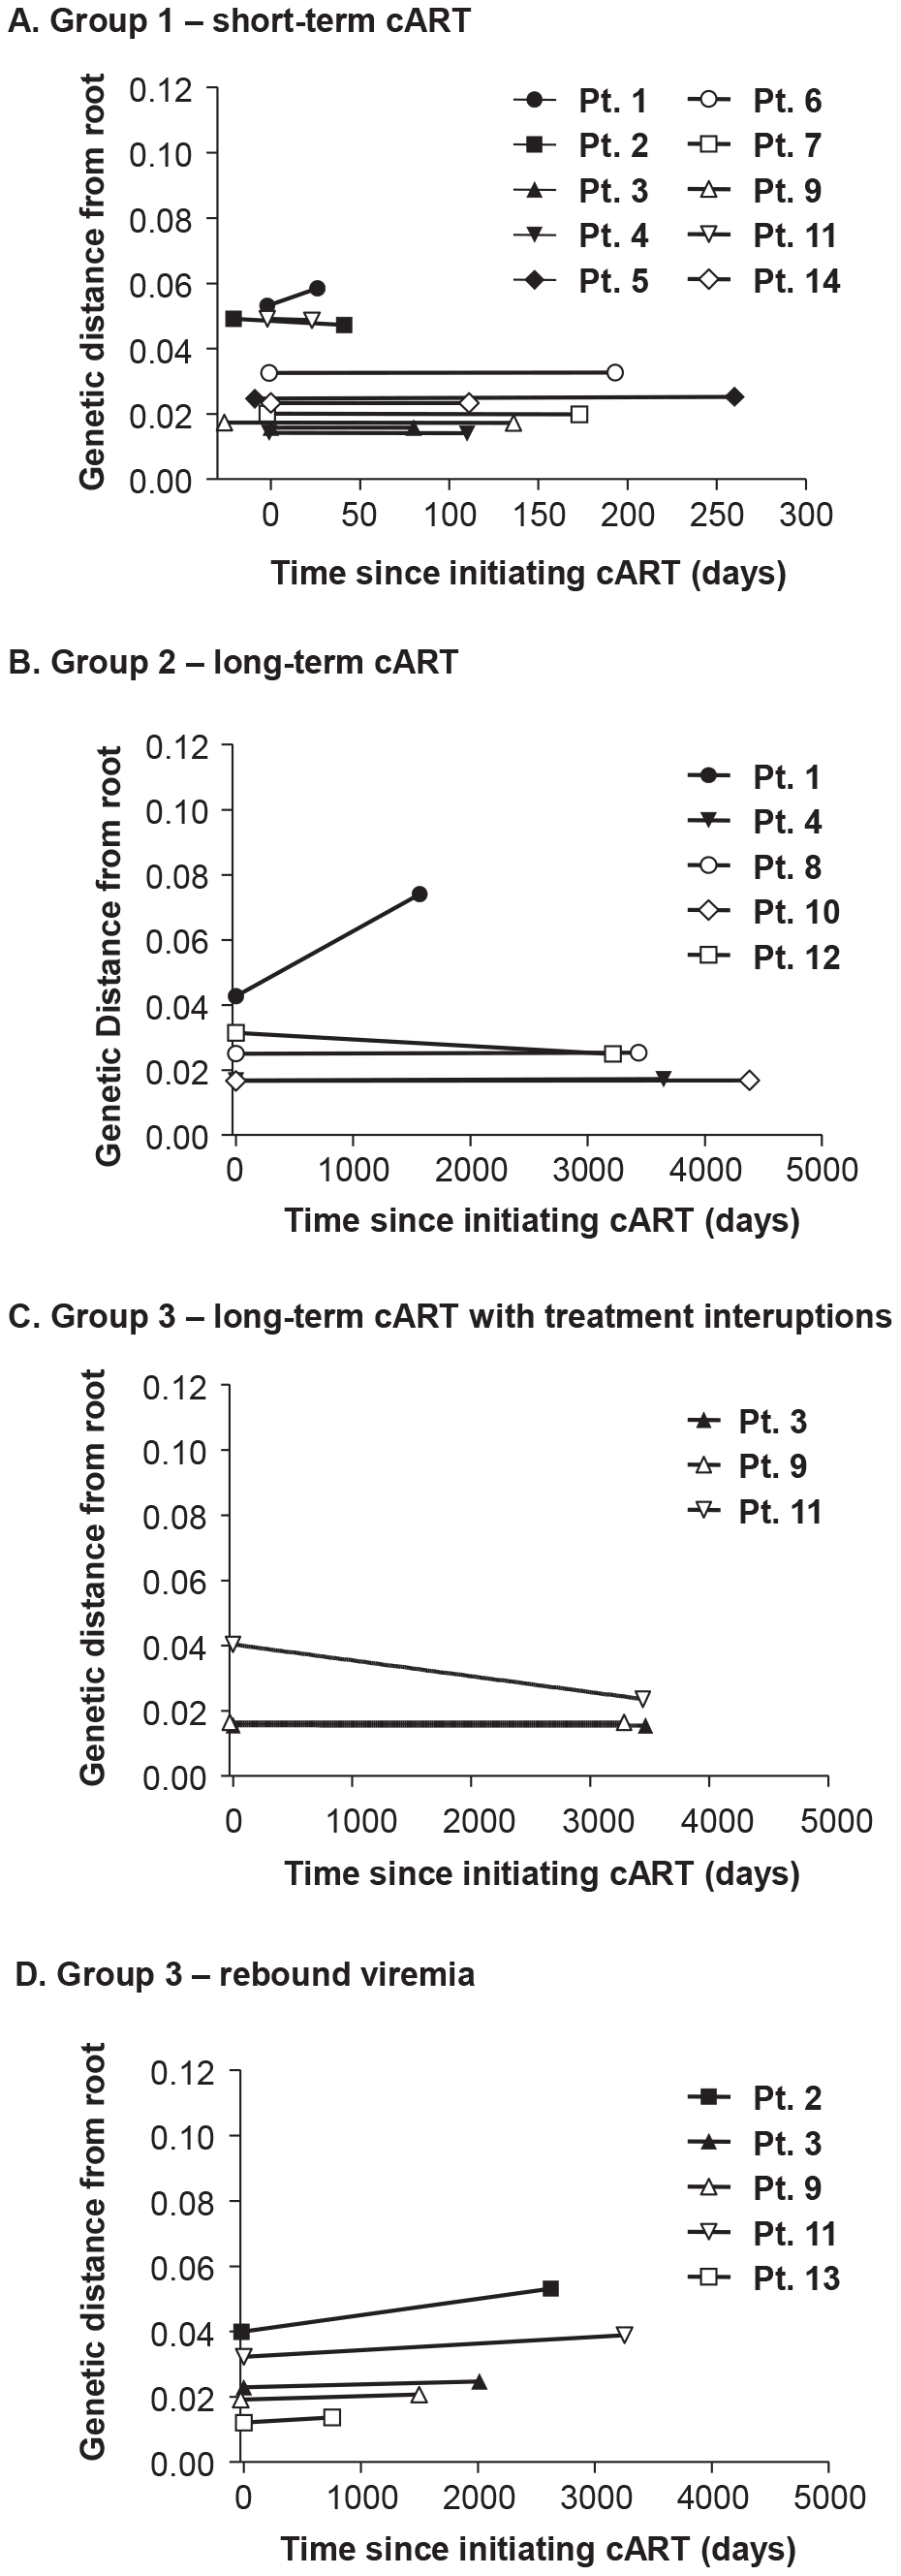 Evolutionary distances of each single-genome sequence from pre-cART and during and after cART compared to the consensus subtype B HIV-1 sequence and plotted over (A) short-term cART (B) long-term cART (C) long-term cART with brief treatment interruptions and (D) rebound viremia.